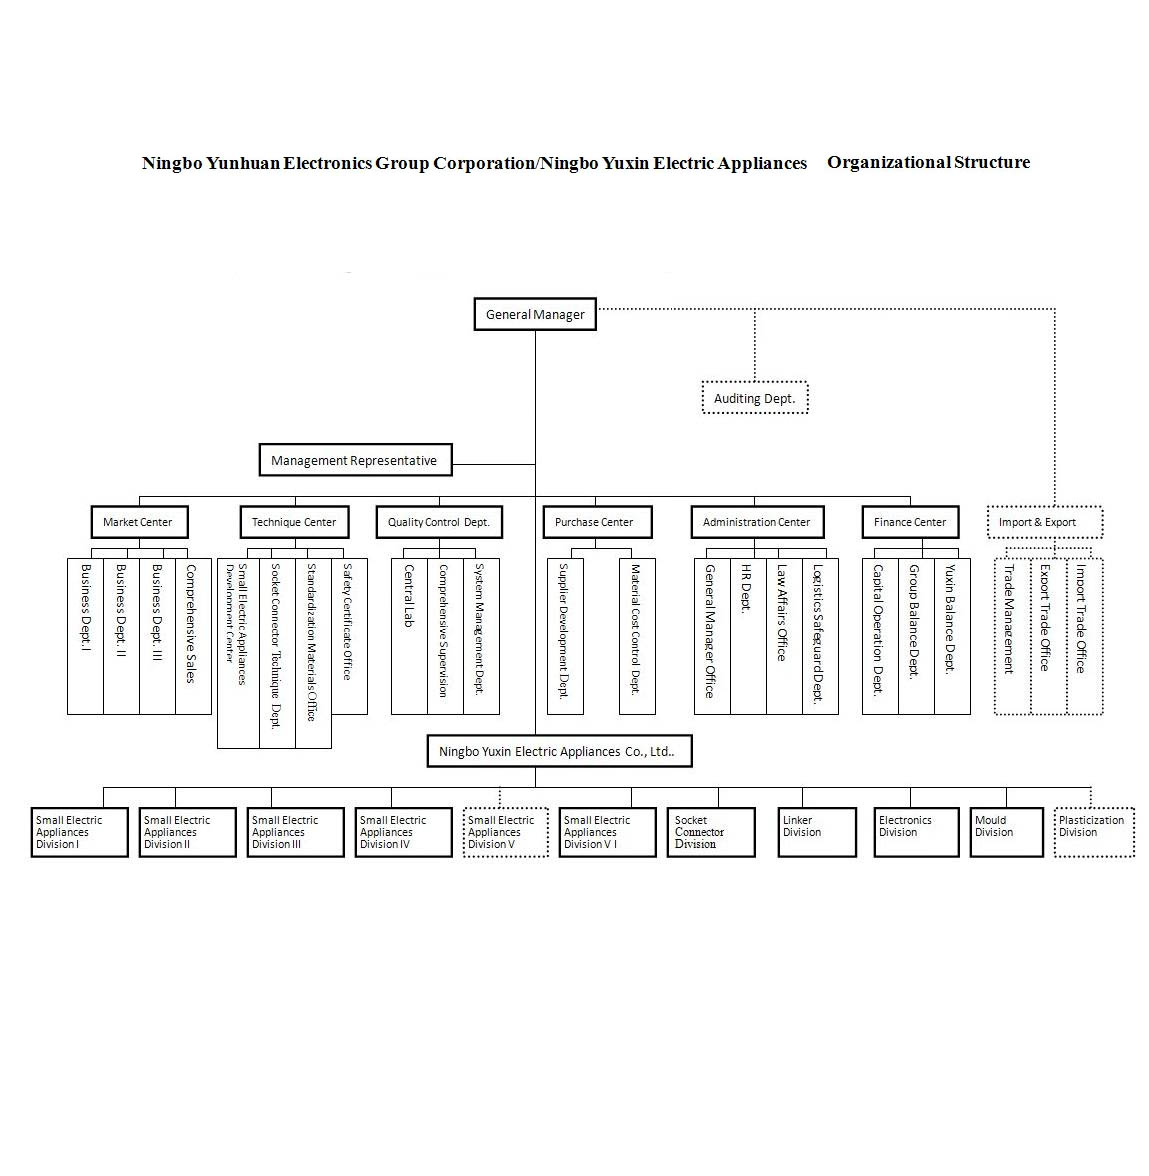 Organizational Structure on YunHuan Electronics